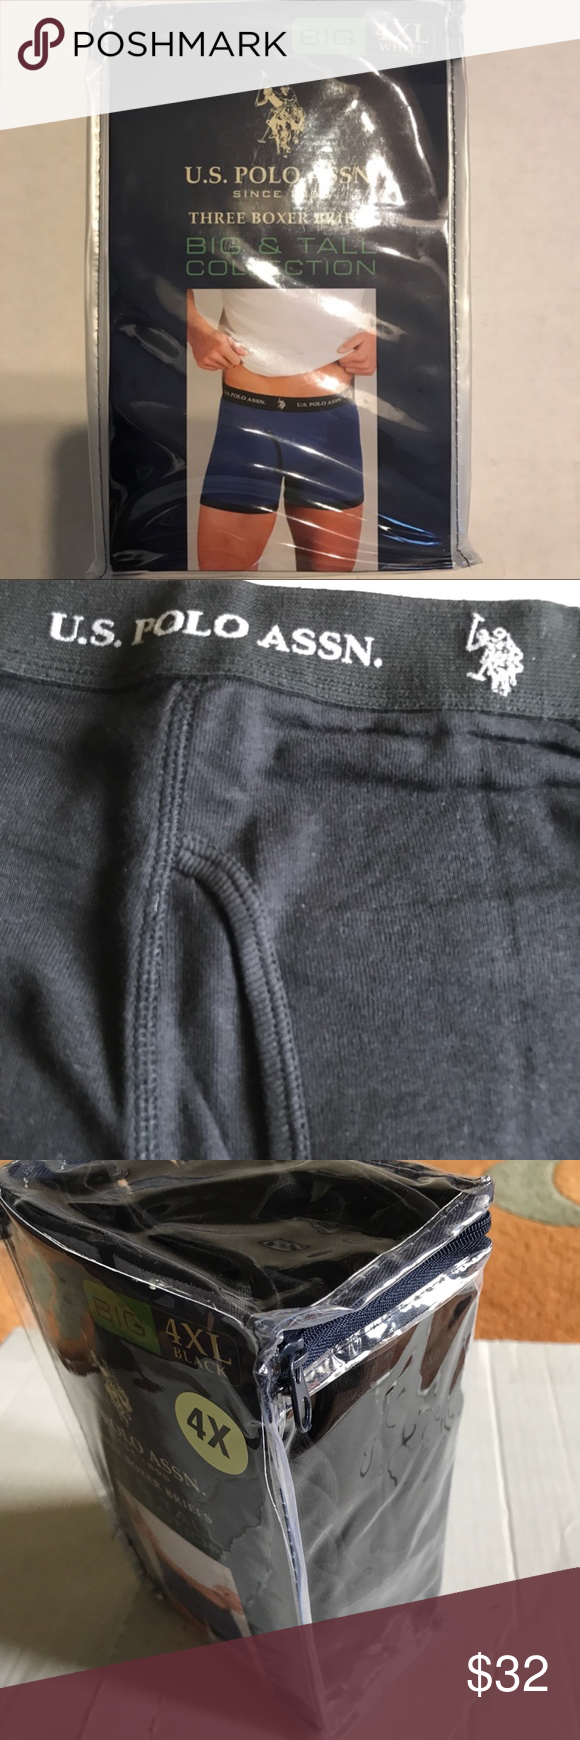 d9c1a194ec3e U. S. Polo Assn. Big & Tall Boxer Briefs 2XL,4XL U. S. Polo Assn. Big 2XL  or 4XL size Mens Black Boxer Briefs. 100% cotton. See photo of size chart. 3  pair ...